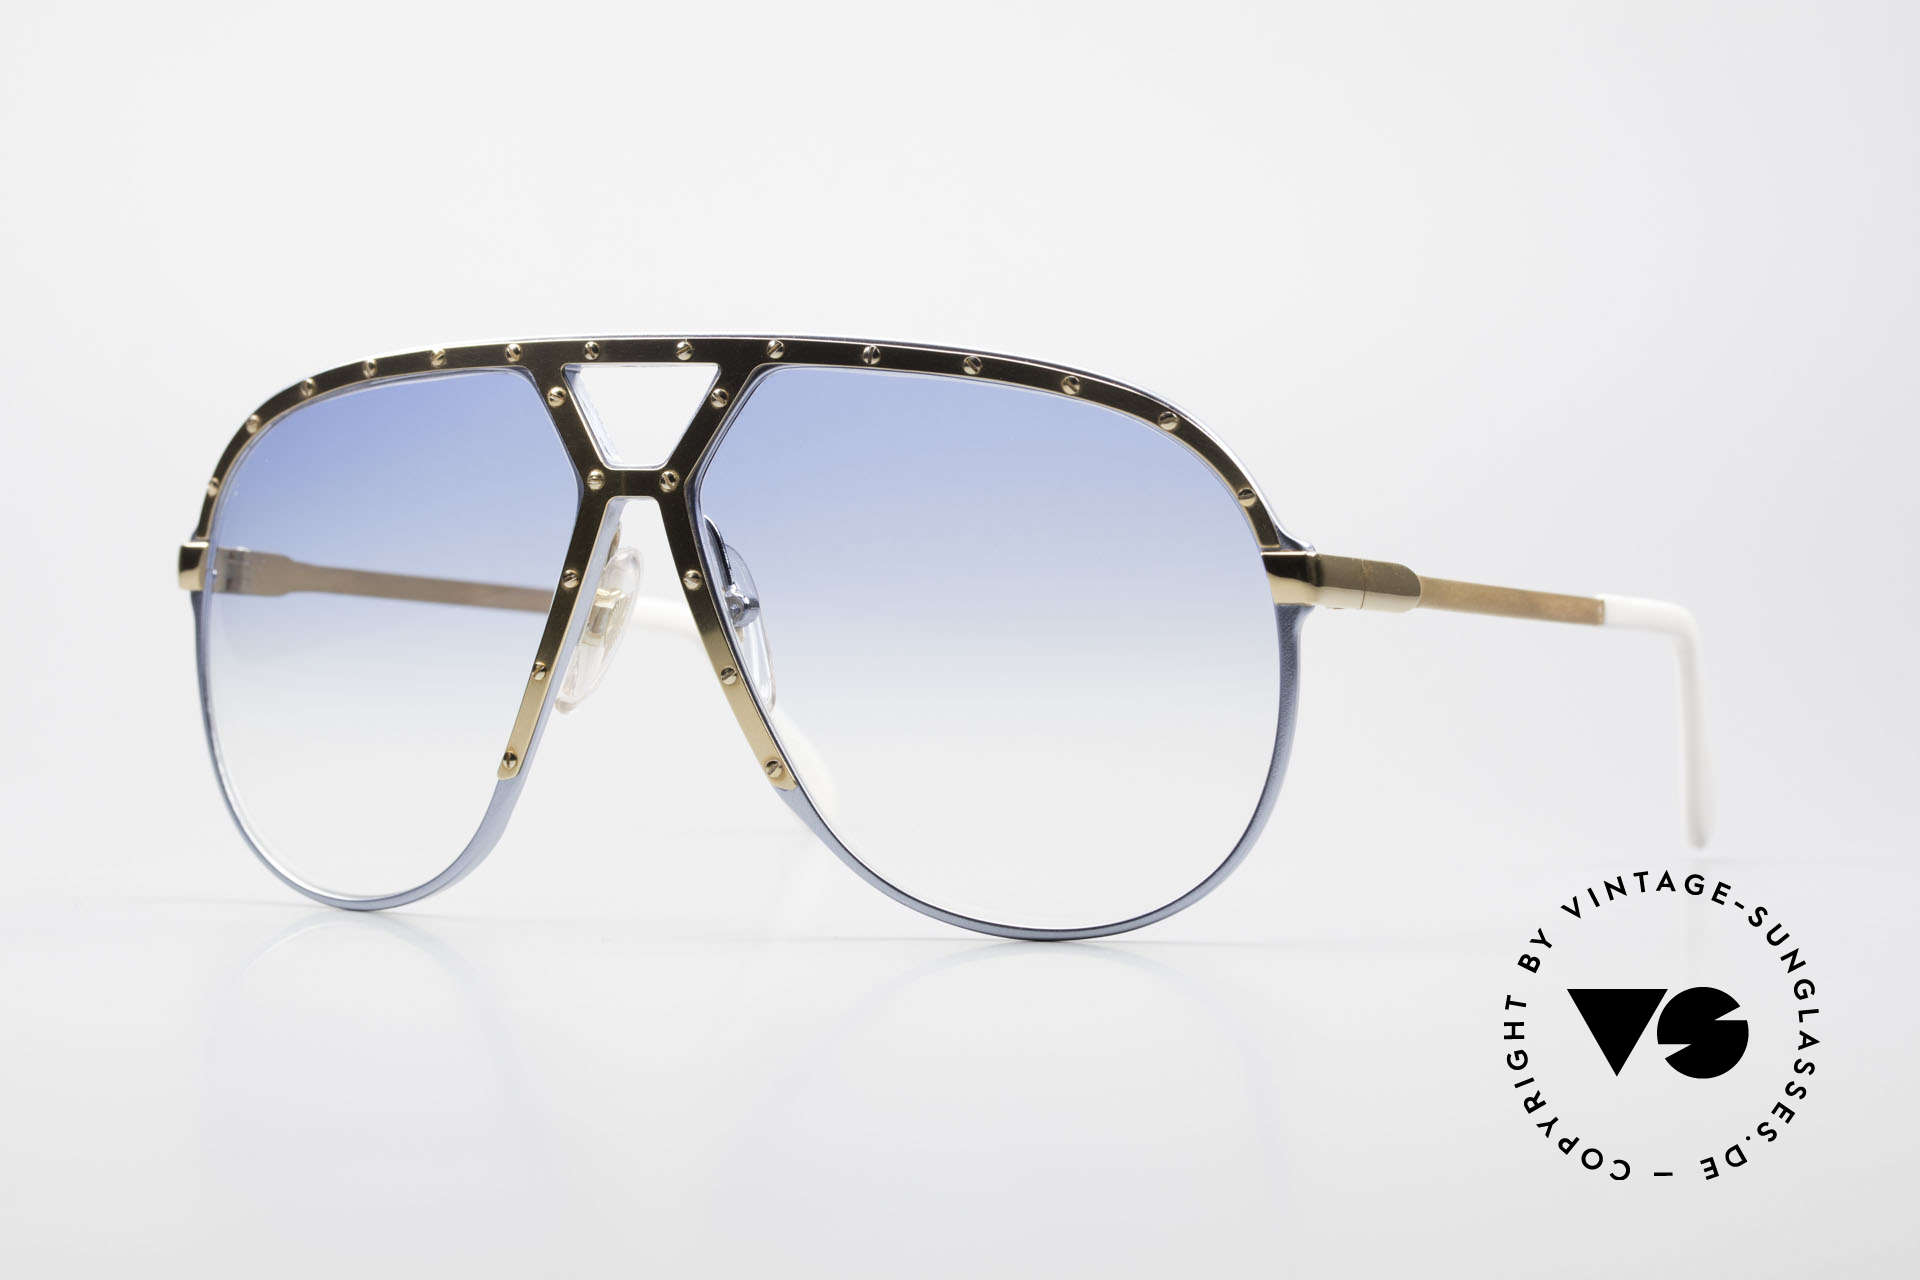 Alpina M1 Limited 80's Baby-Blue Gold, incredible rare vintage Alpina M1 shades from 1986, Made for Men